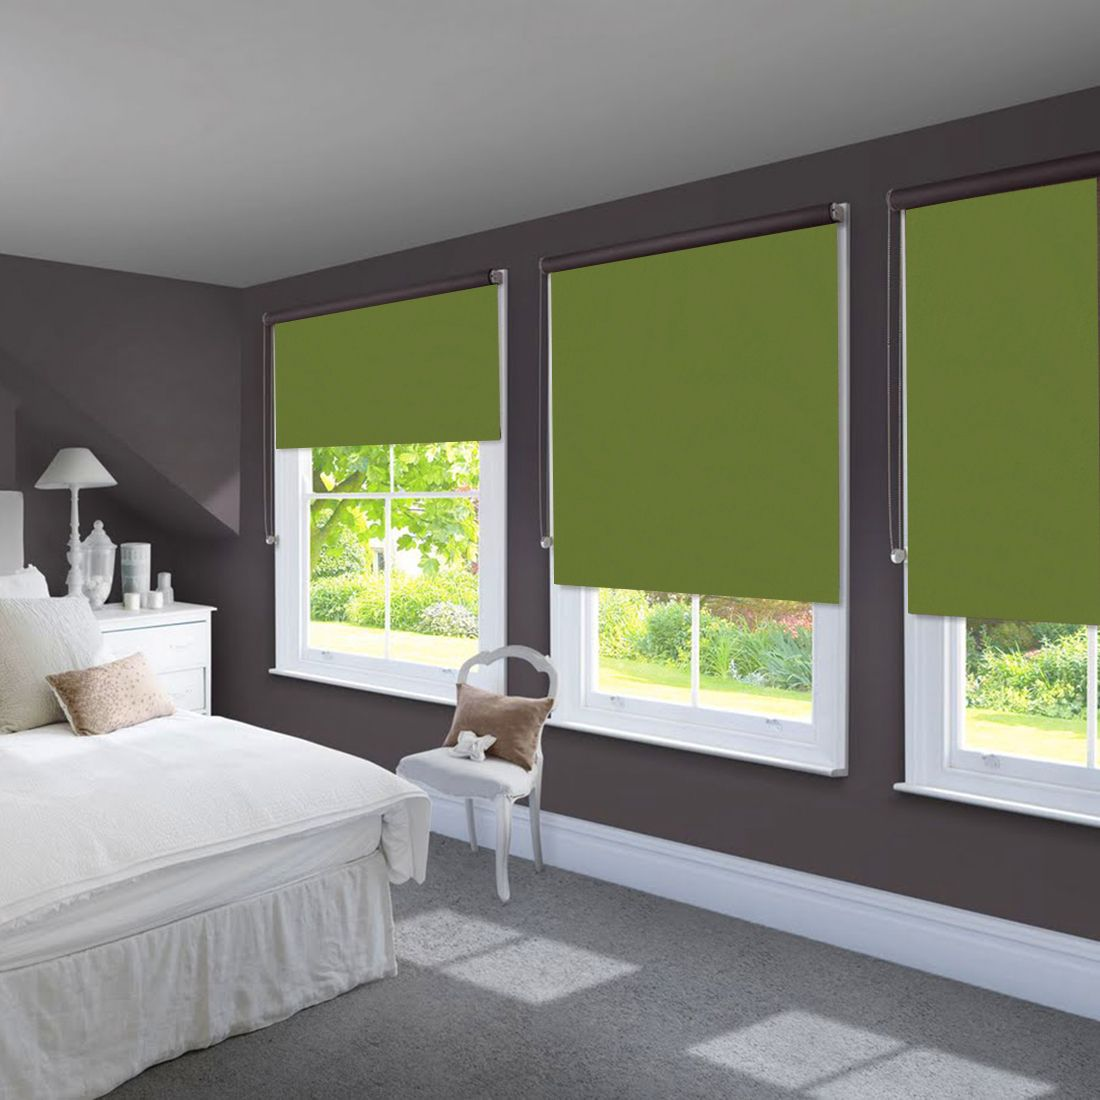 Green roller blinds in futuristic bedroom with dark purple walls